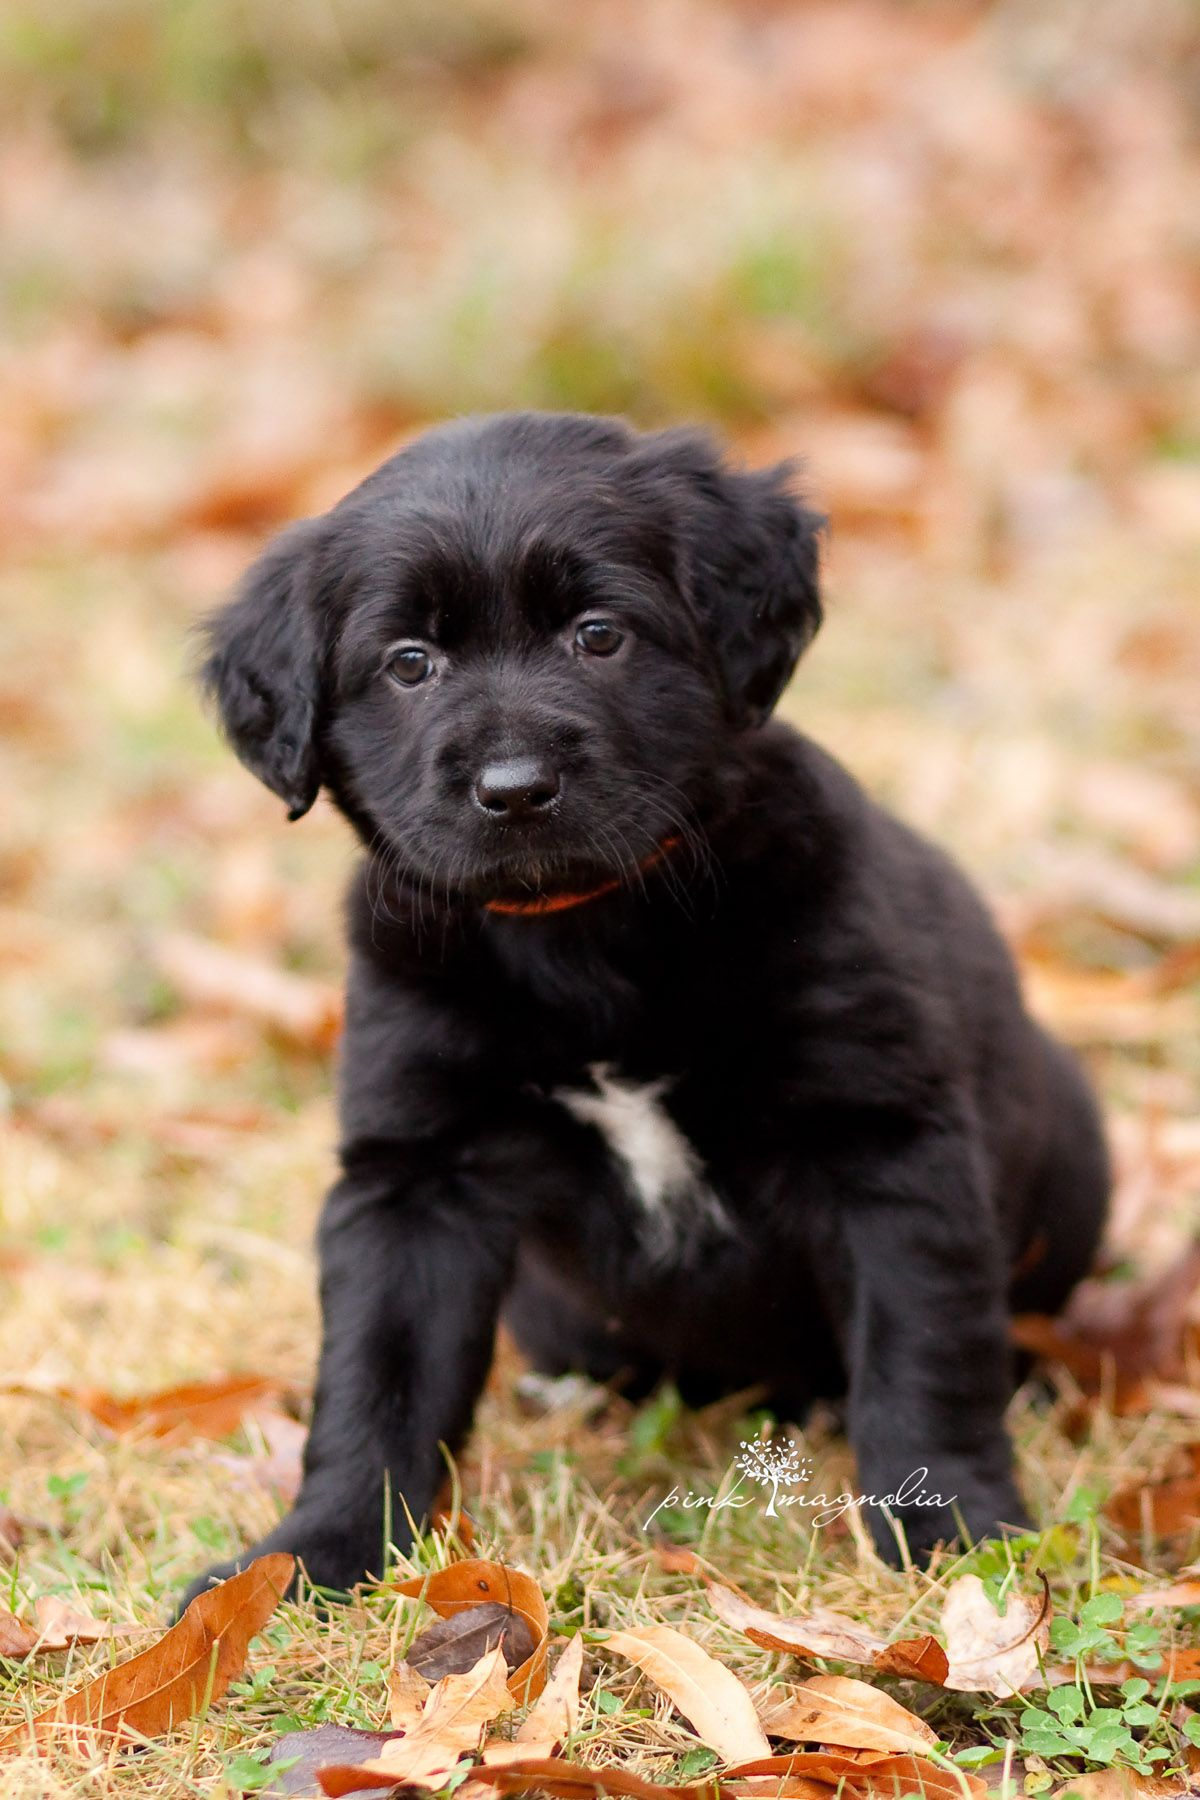 Haley Is A Black Lab Mix Puppy Who Is Now Available For Adoption Through The Fayette Humane Society In Fayette County Georgia Fill Out An Application Online